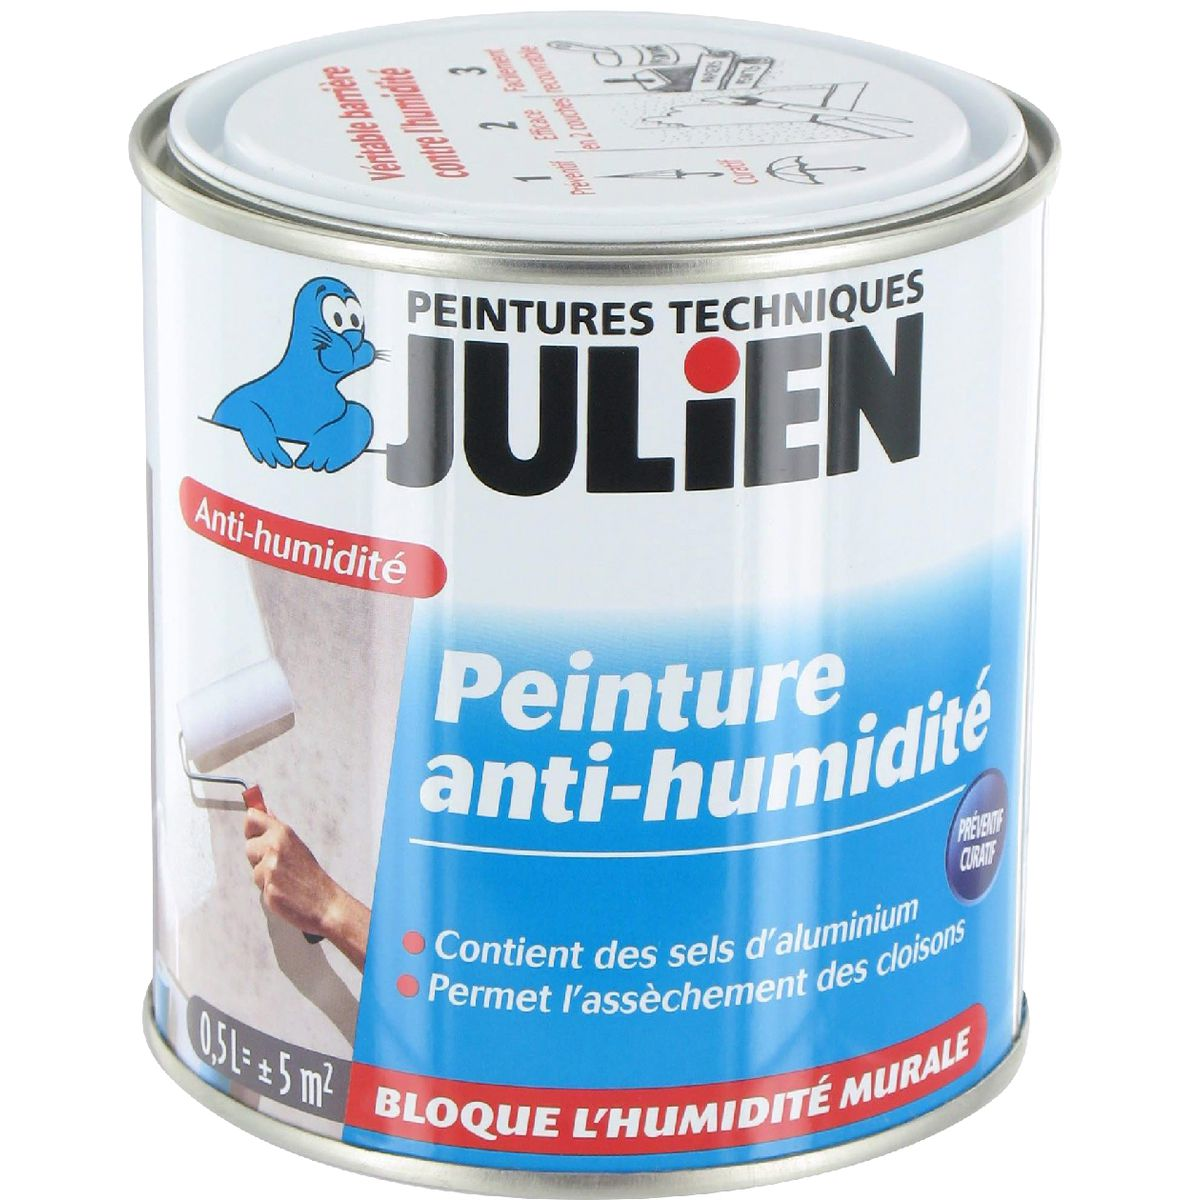 peinture anti humidit julien bo te 500 ml de peinture isolante 1065688 mon magasin g n ral. Black Bedroom Furniture Sets. Home Design Ideas